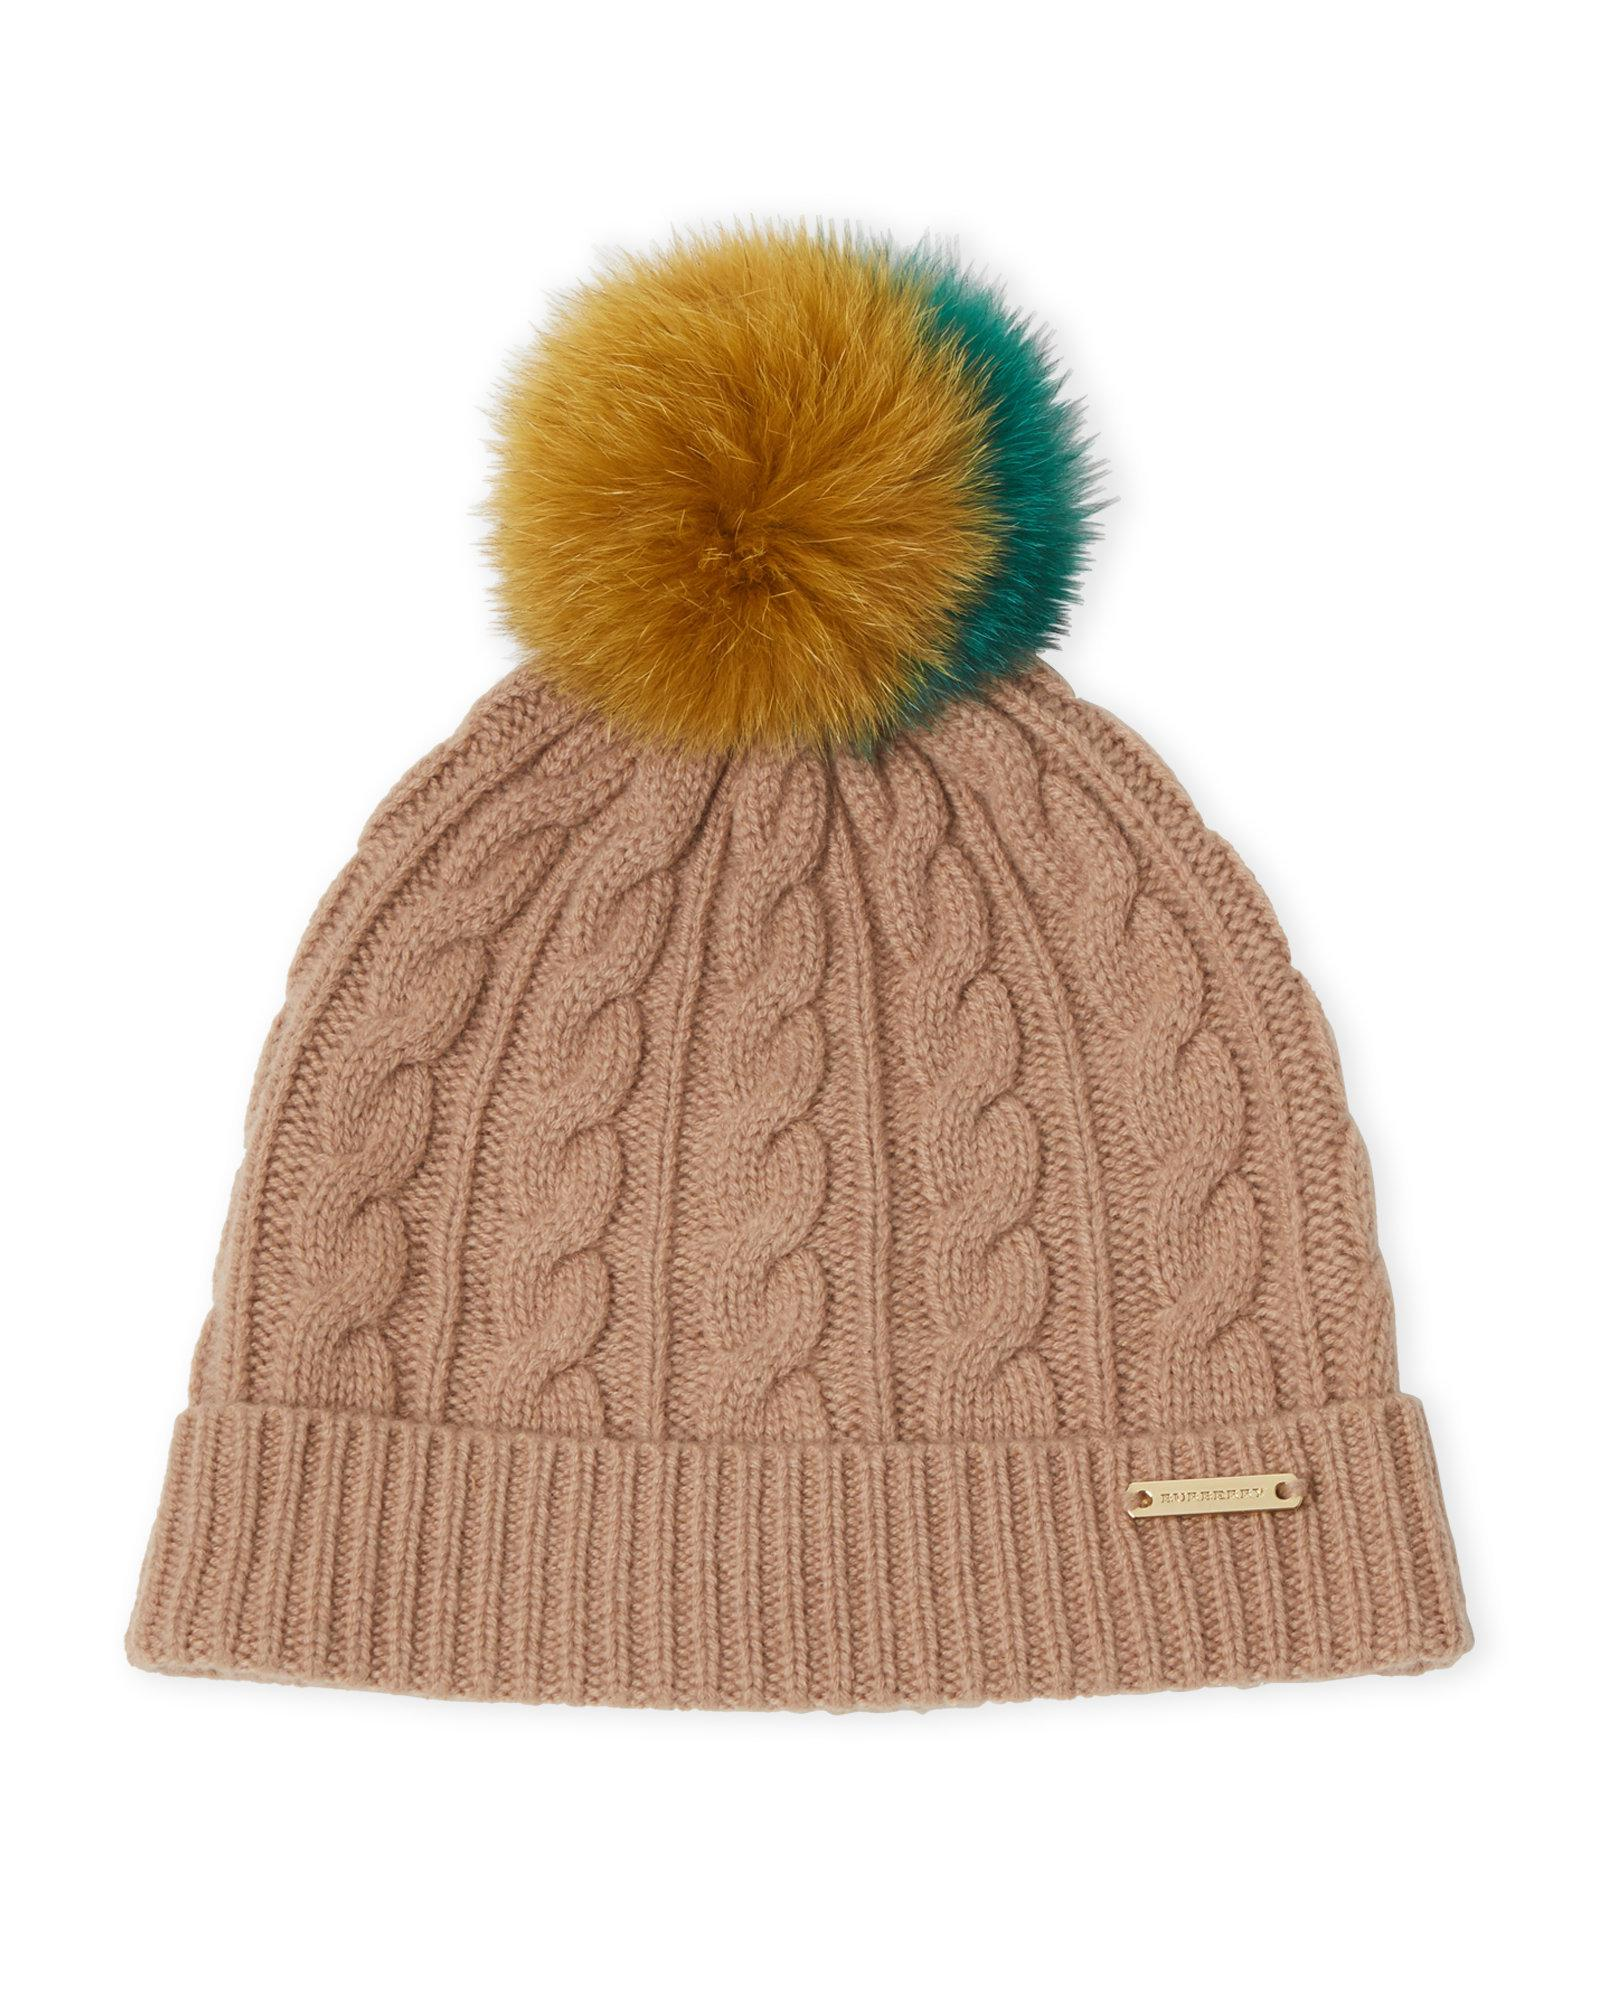 0b6f039bf3e Lyst - Burberry Camel Real Fur Pom-pom Beanie in Natural for Men